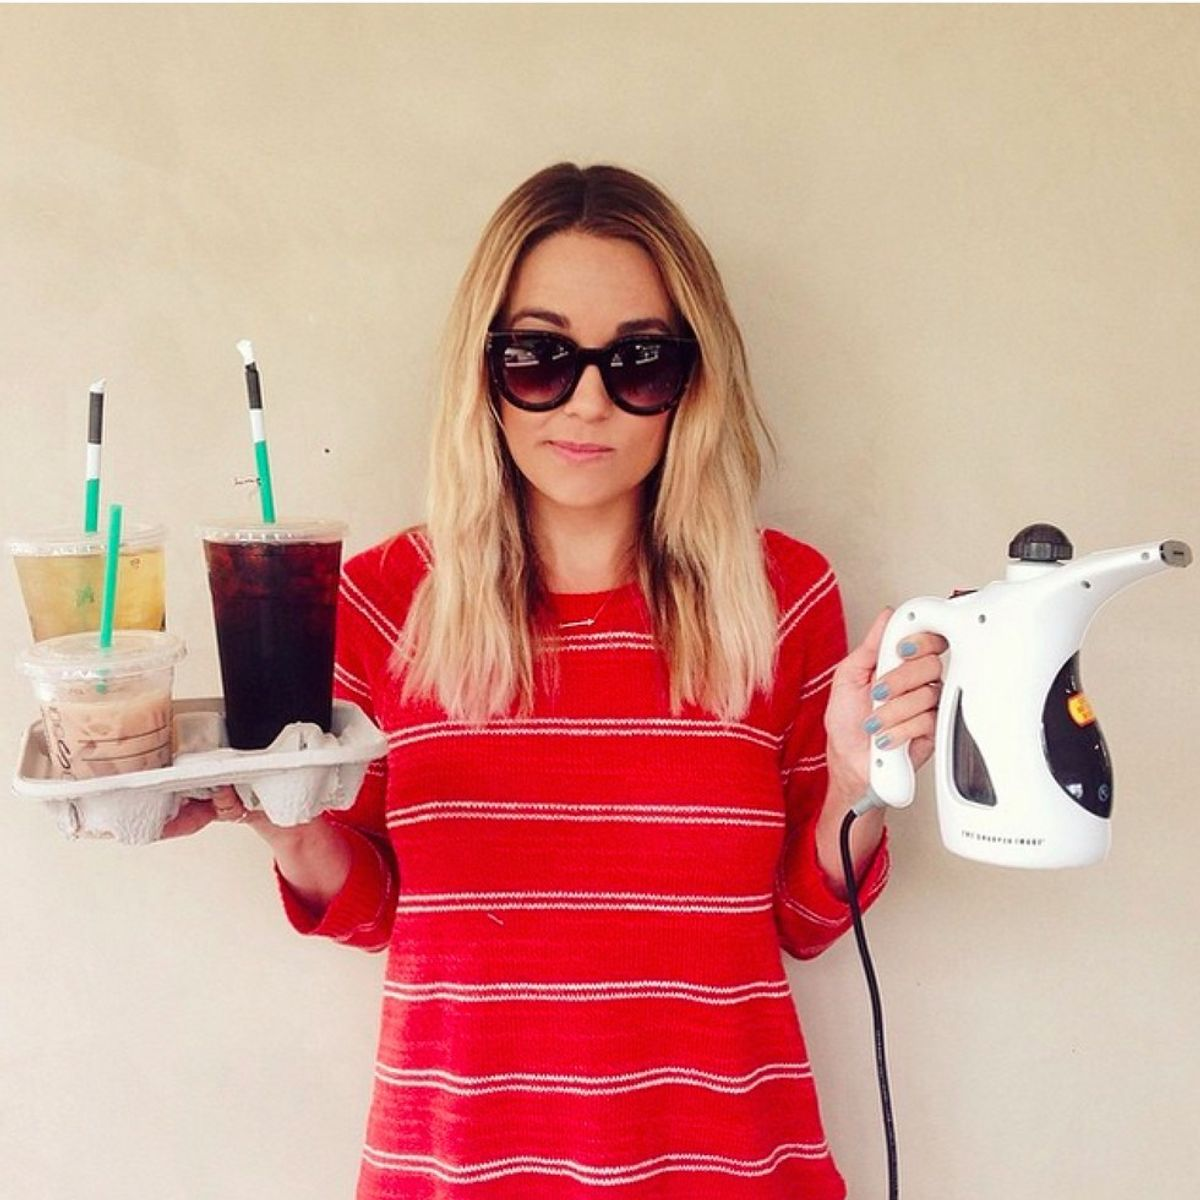 How To Own Your Basicness